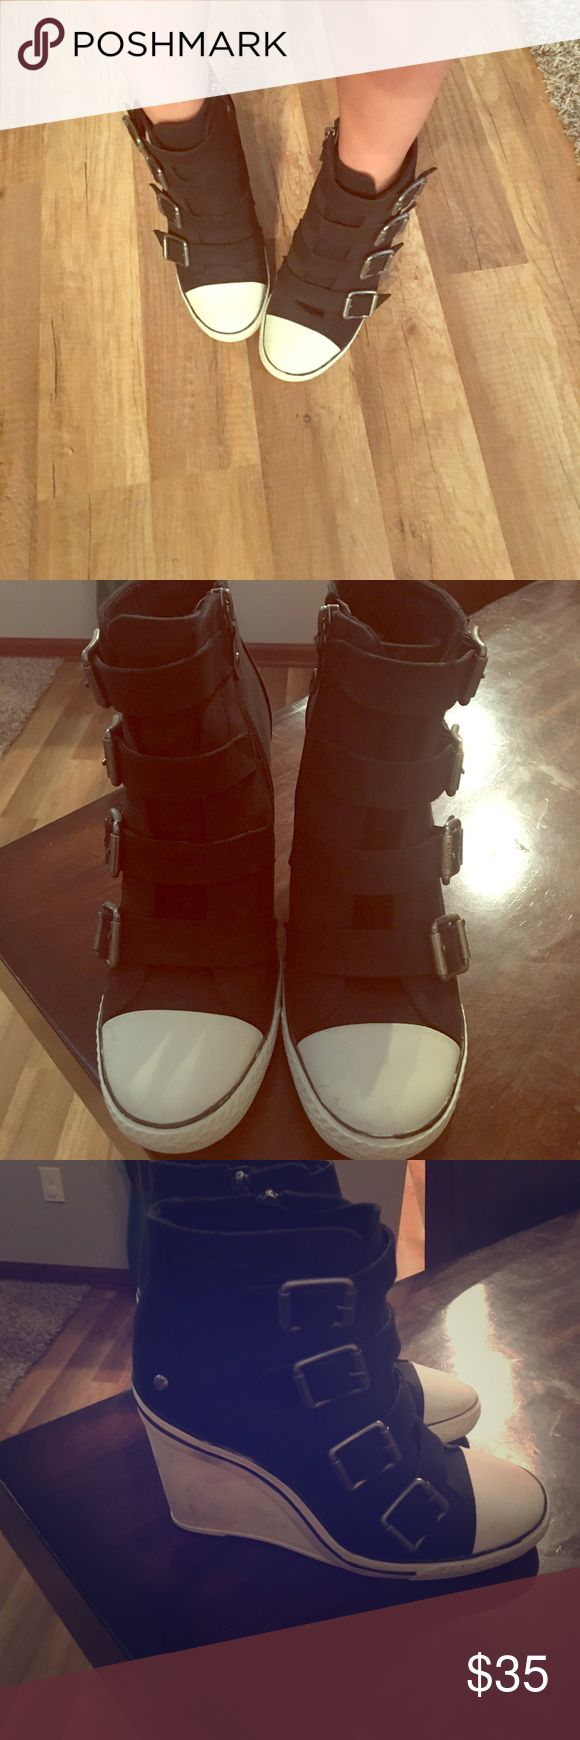 Vera Wang sneak wedge. Black and white sneaker wedges with cute buckle details. Brand new only worn in house never outside. Simply Vera Vera Wang Shoes Wedges